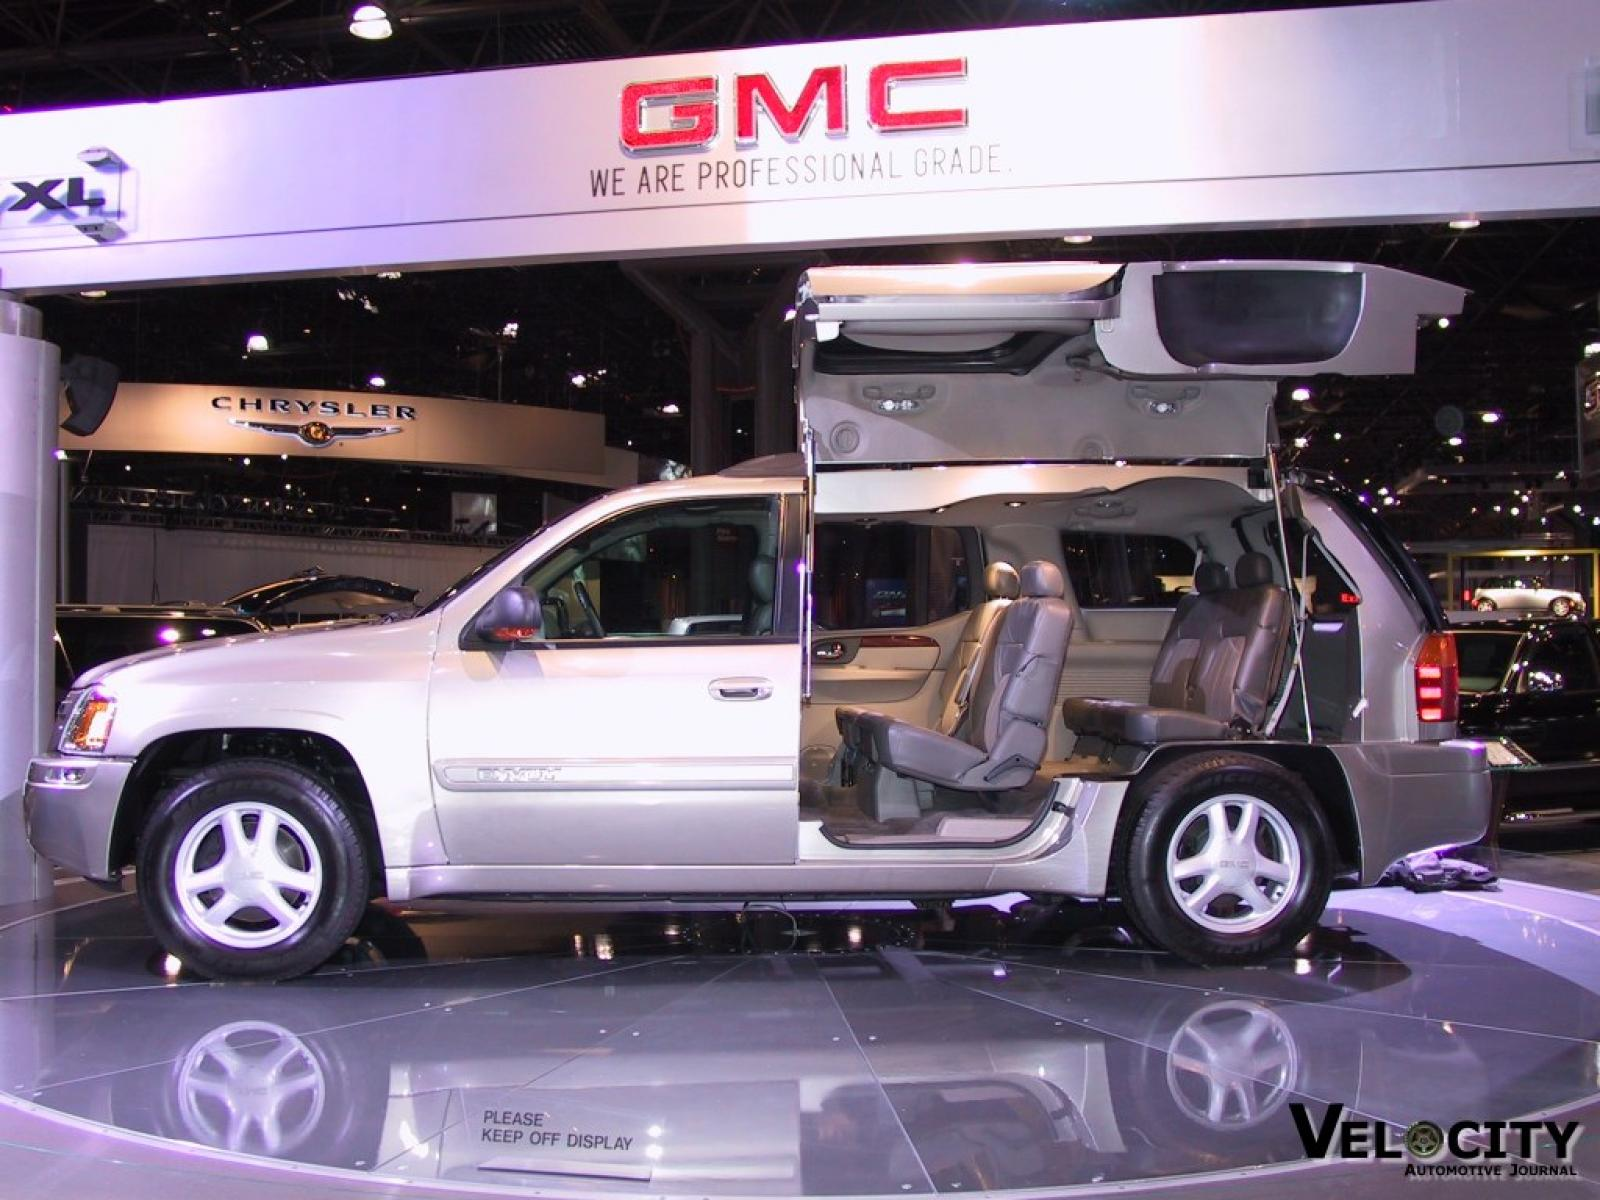 800 1024 1280 1600 Origin 2003 Gmc Envoy